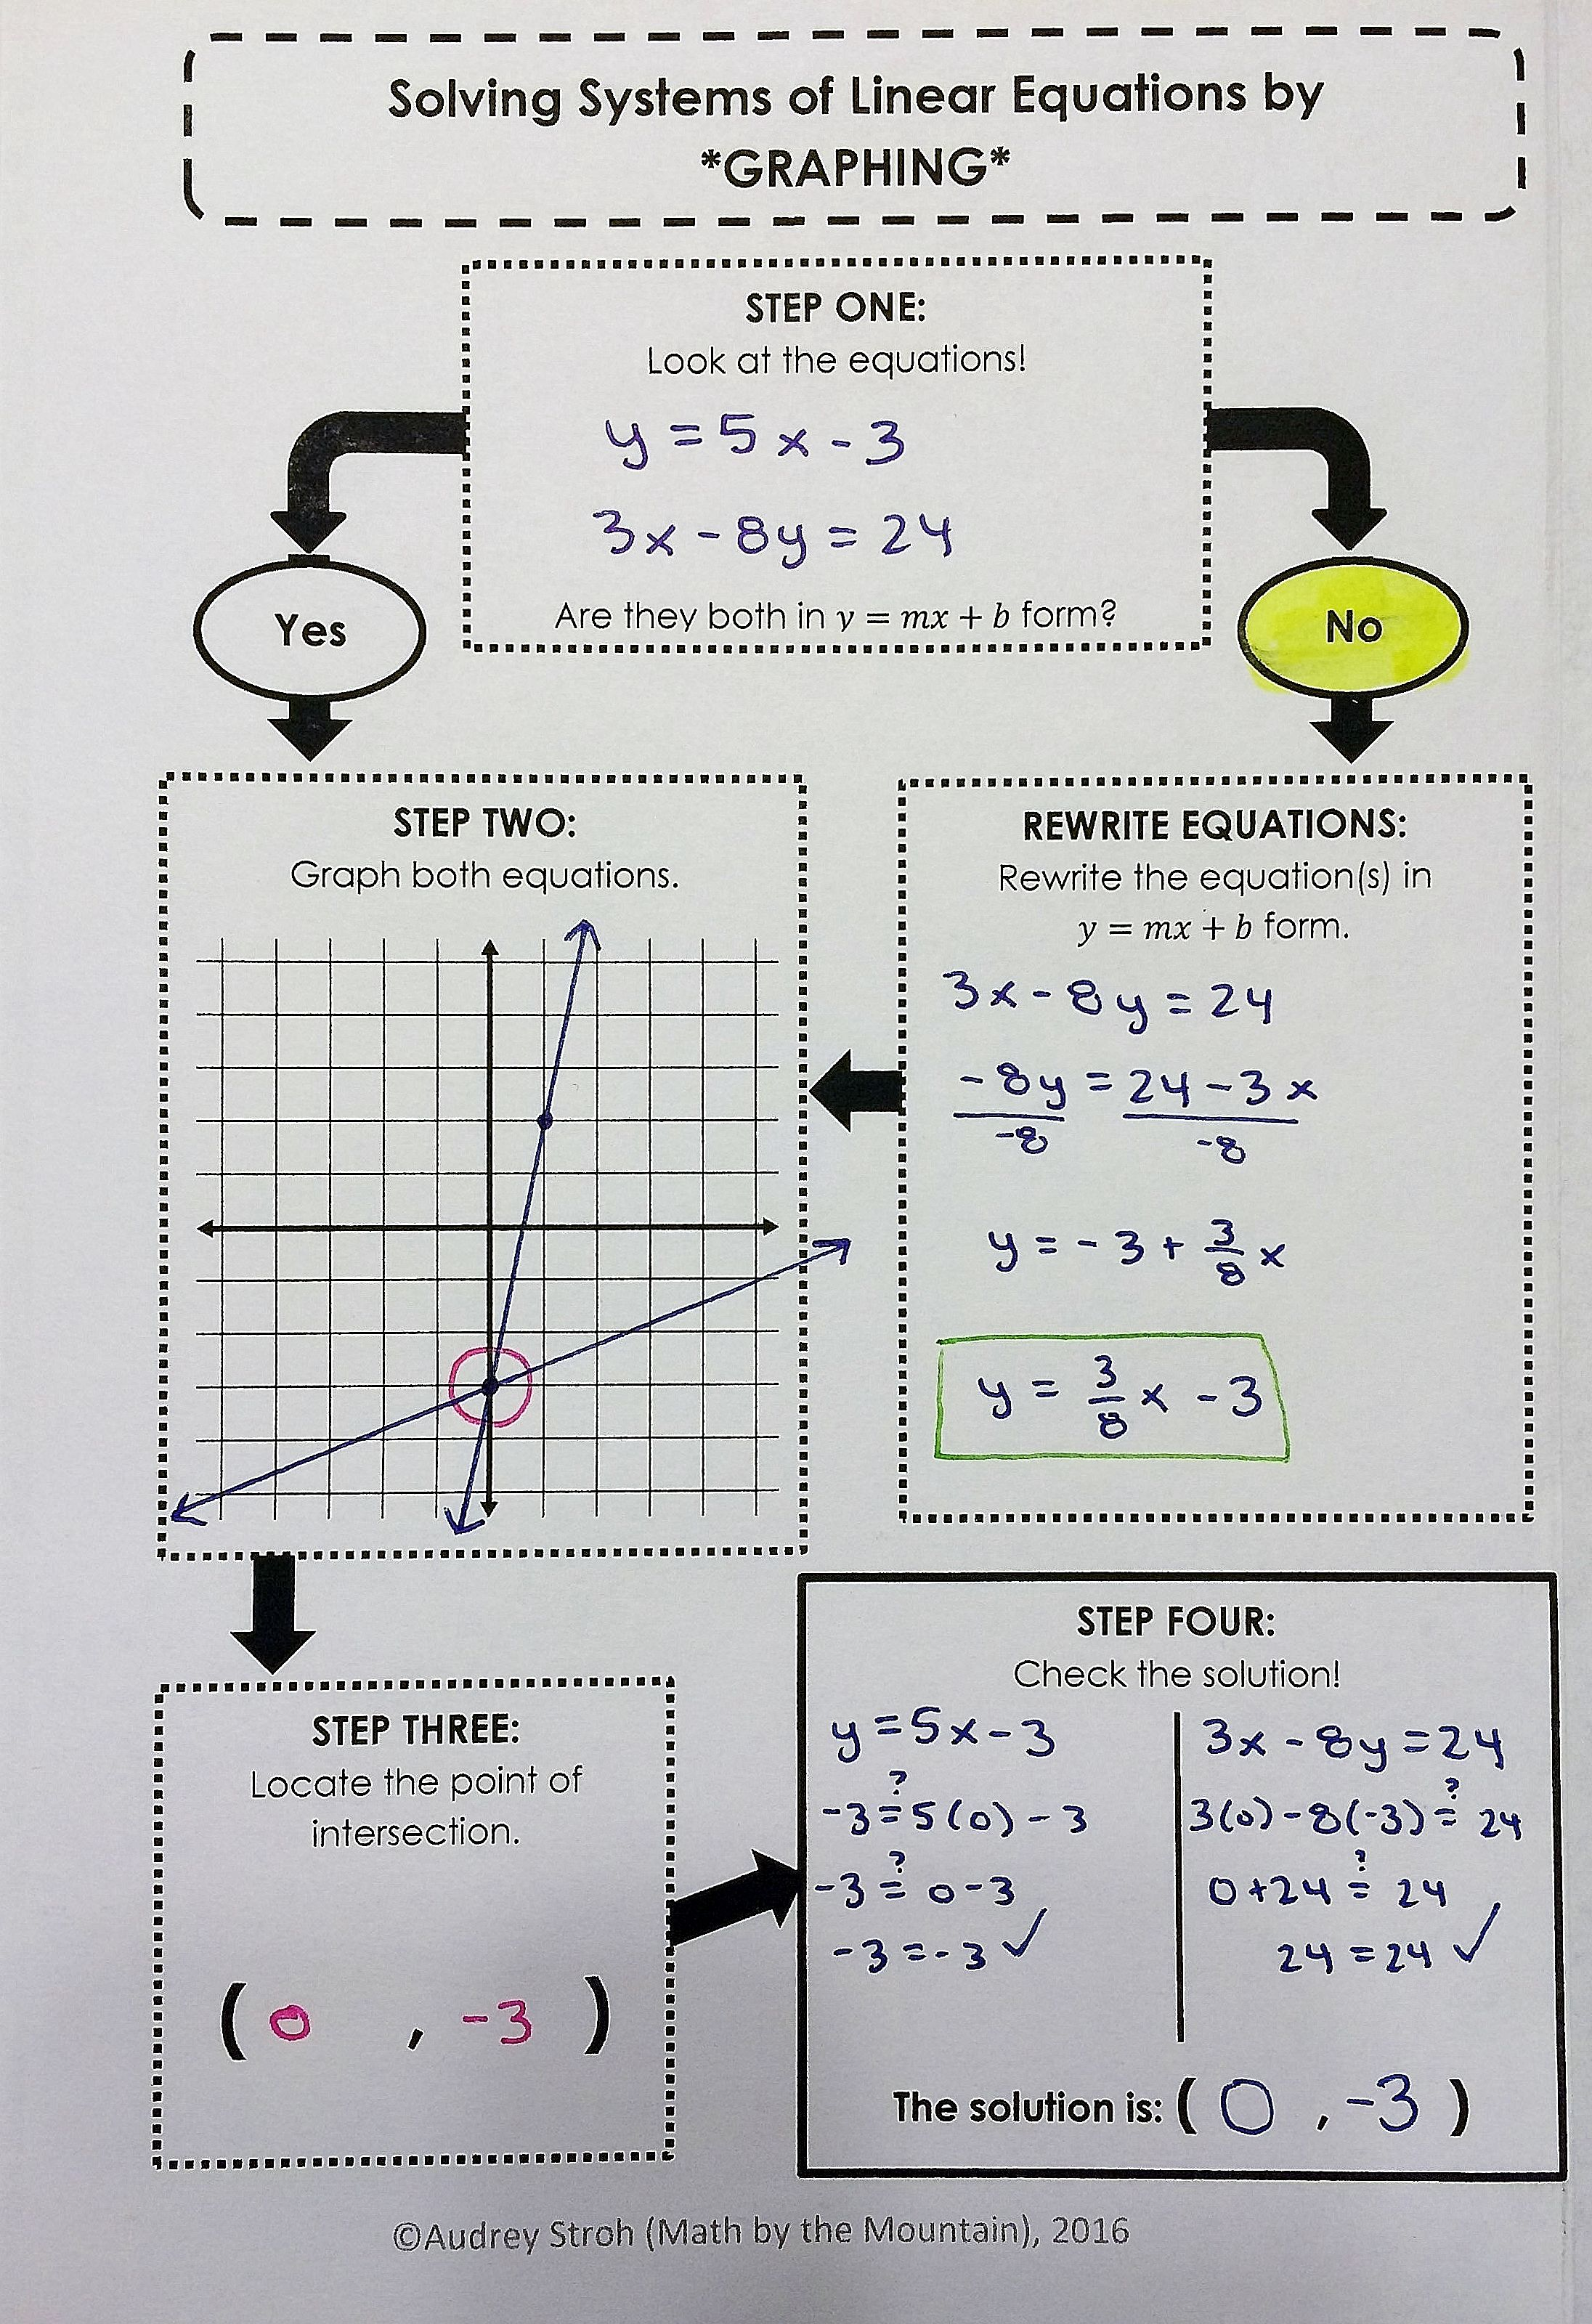 Solving Systems Of Linear Equations By Graphing Flowchart